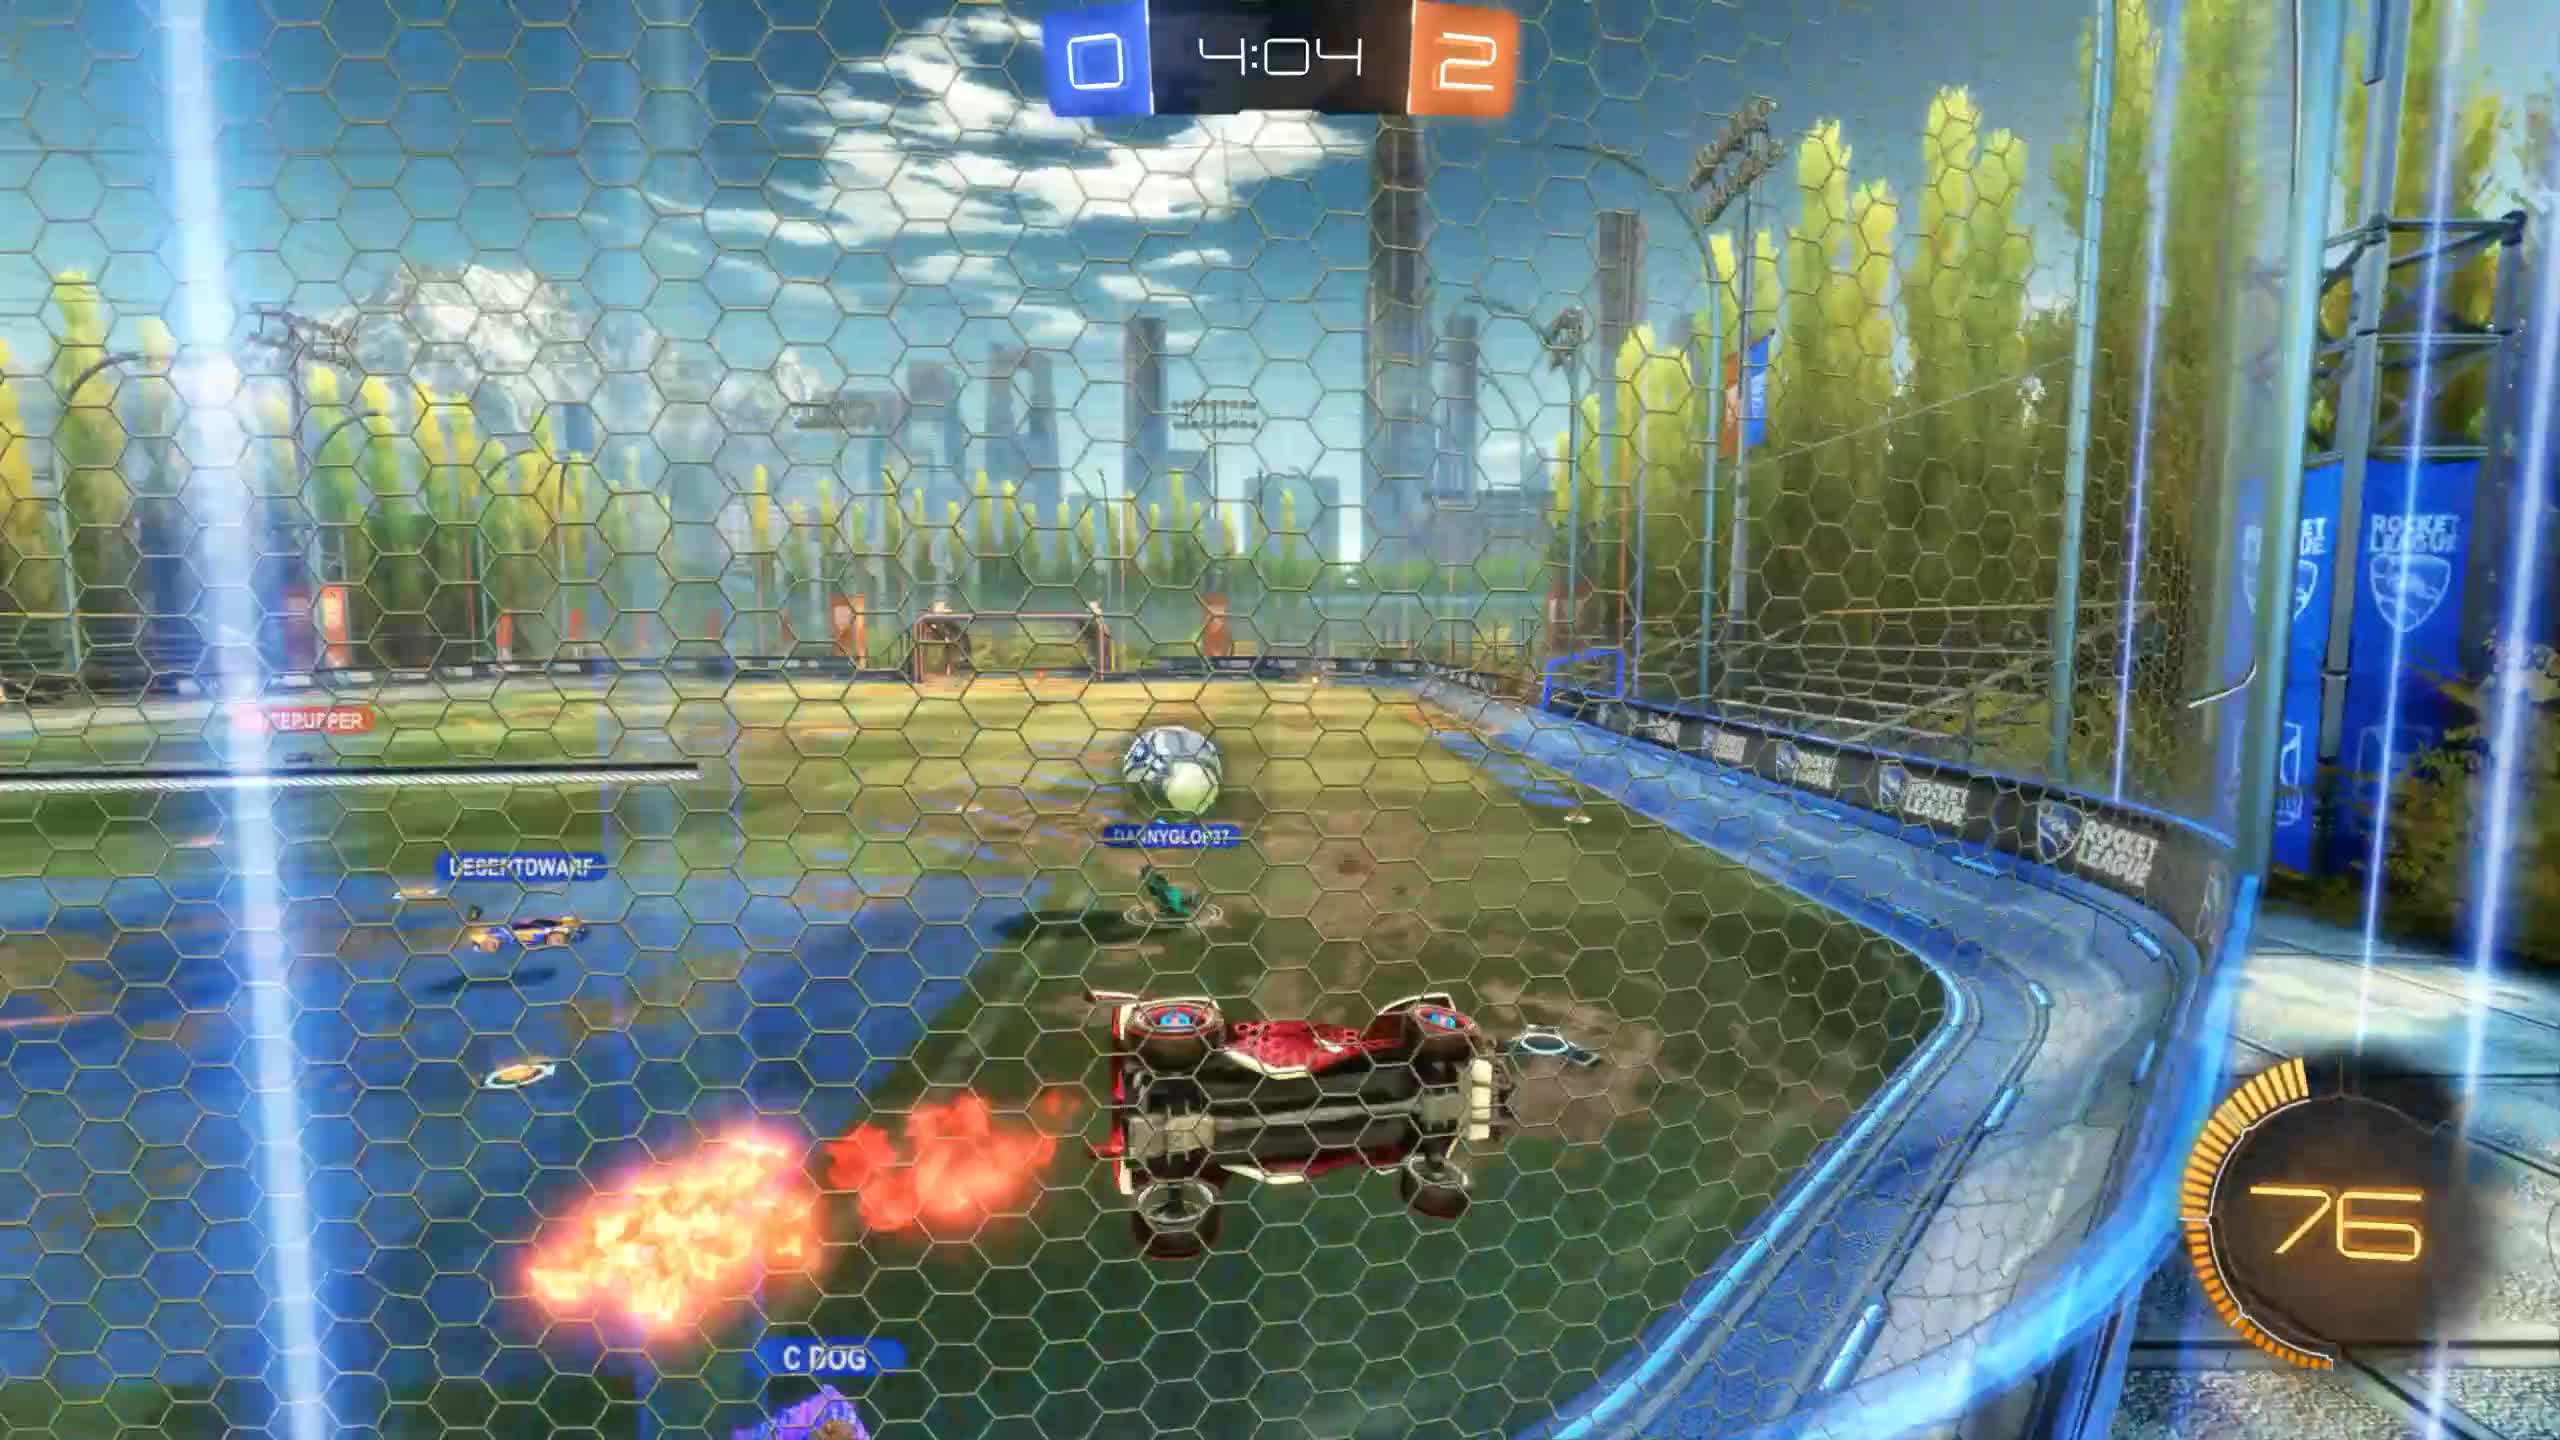 Bad Panda, BadPanda, Rocket League, RocketLeague, Goal 3: C DOG GIFs